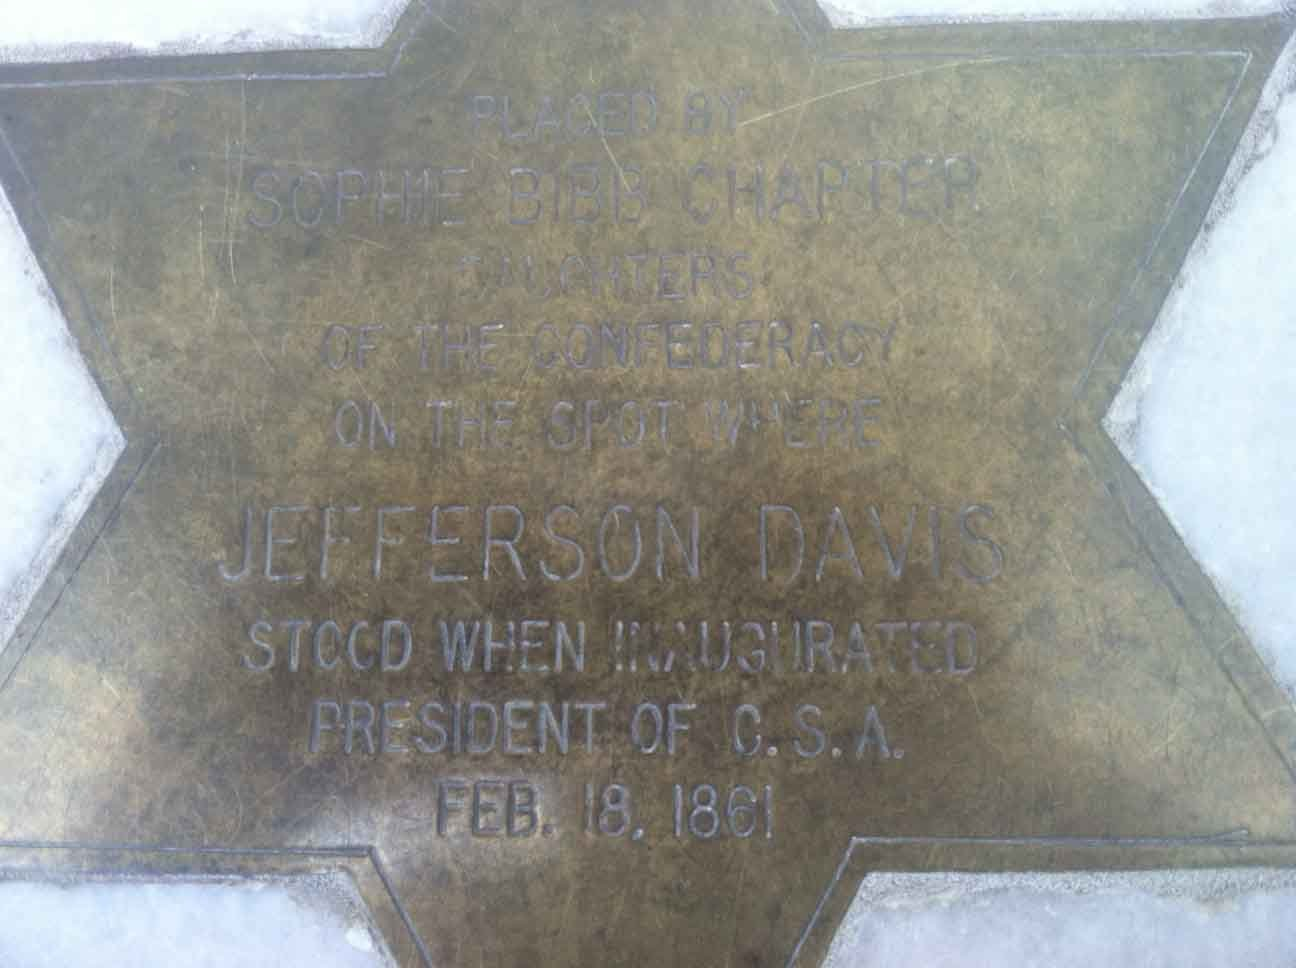 This place where Jefferson Davis stood while being inaugurated is marked by this star at the Alabama State Capitol in Montgomery, AL. (Source: RNN/Brian Tynes)